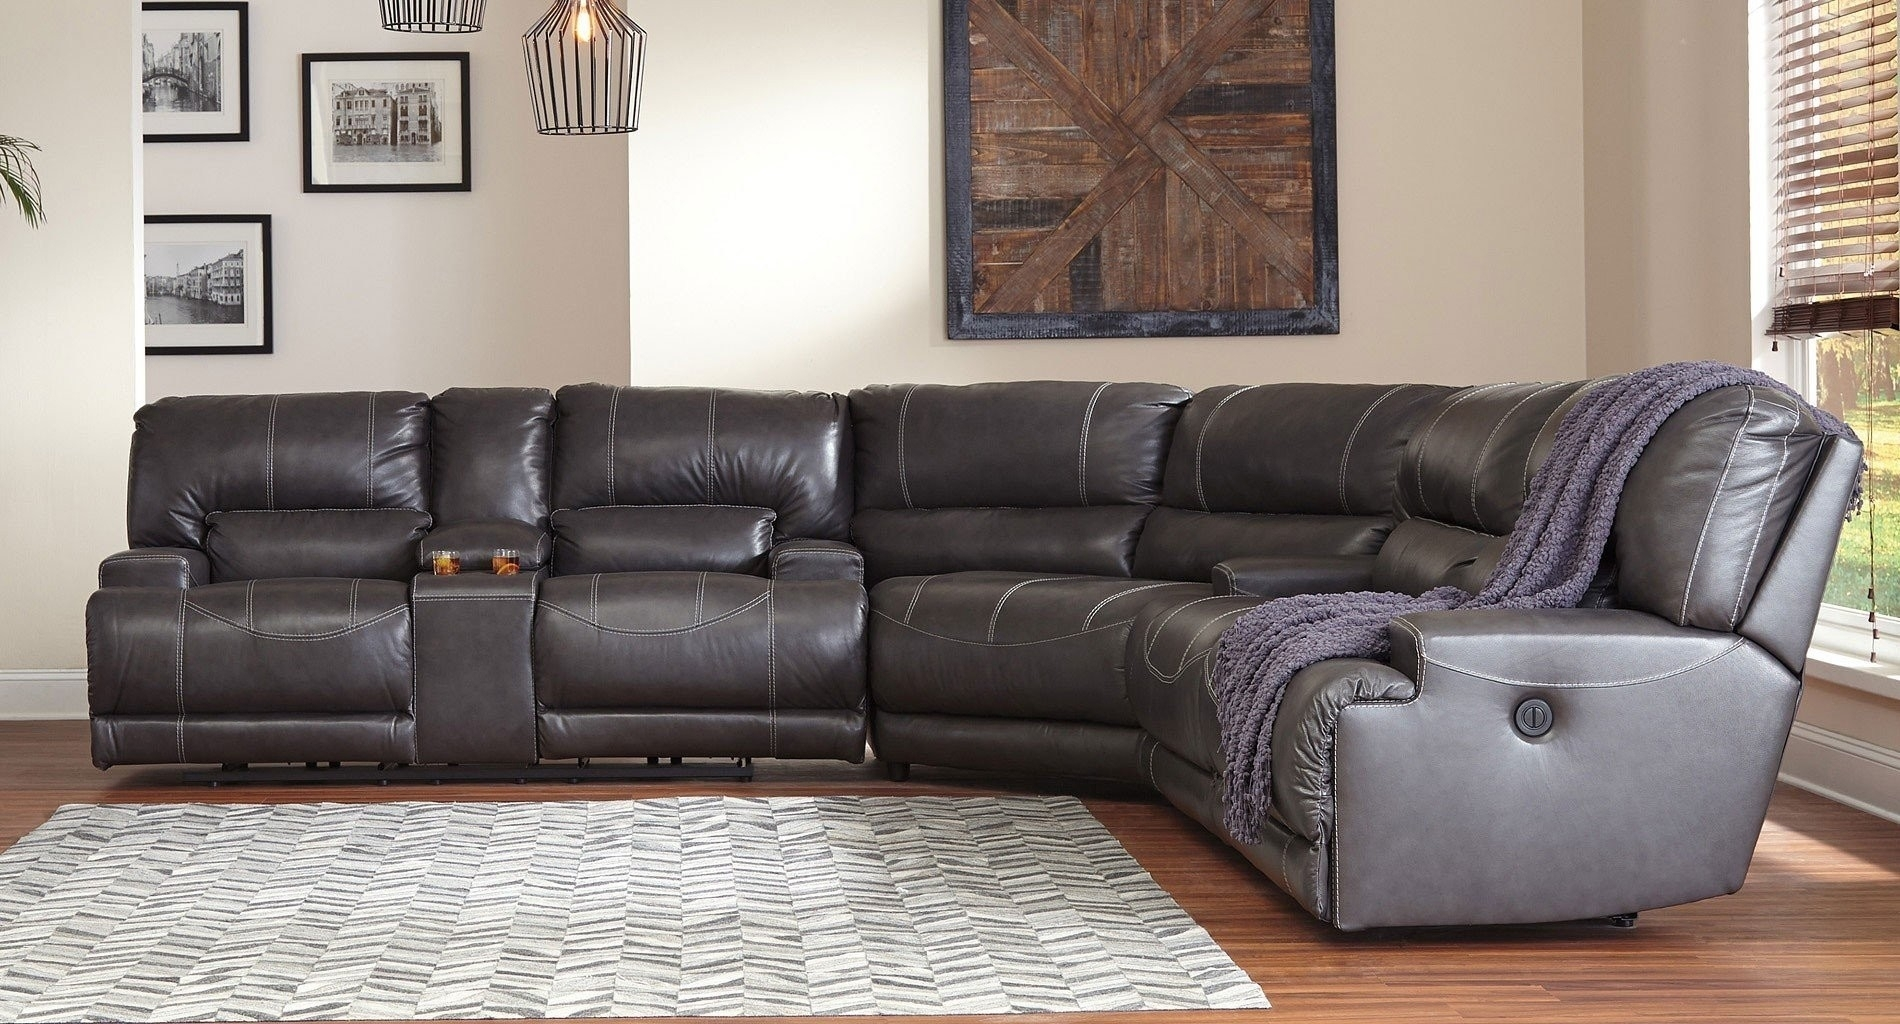 Gray Reclining Sectional Denali Light Grey 6 Piece W 2 Power Within Denali Light Grey 6 Piece Reclining Sectionals With 2 Power Headrests (View 17 of 25)